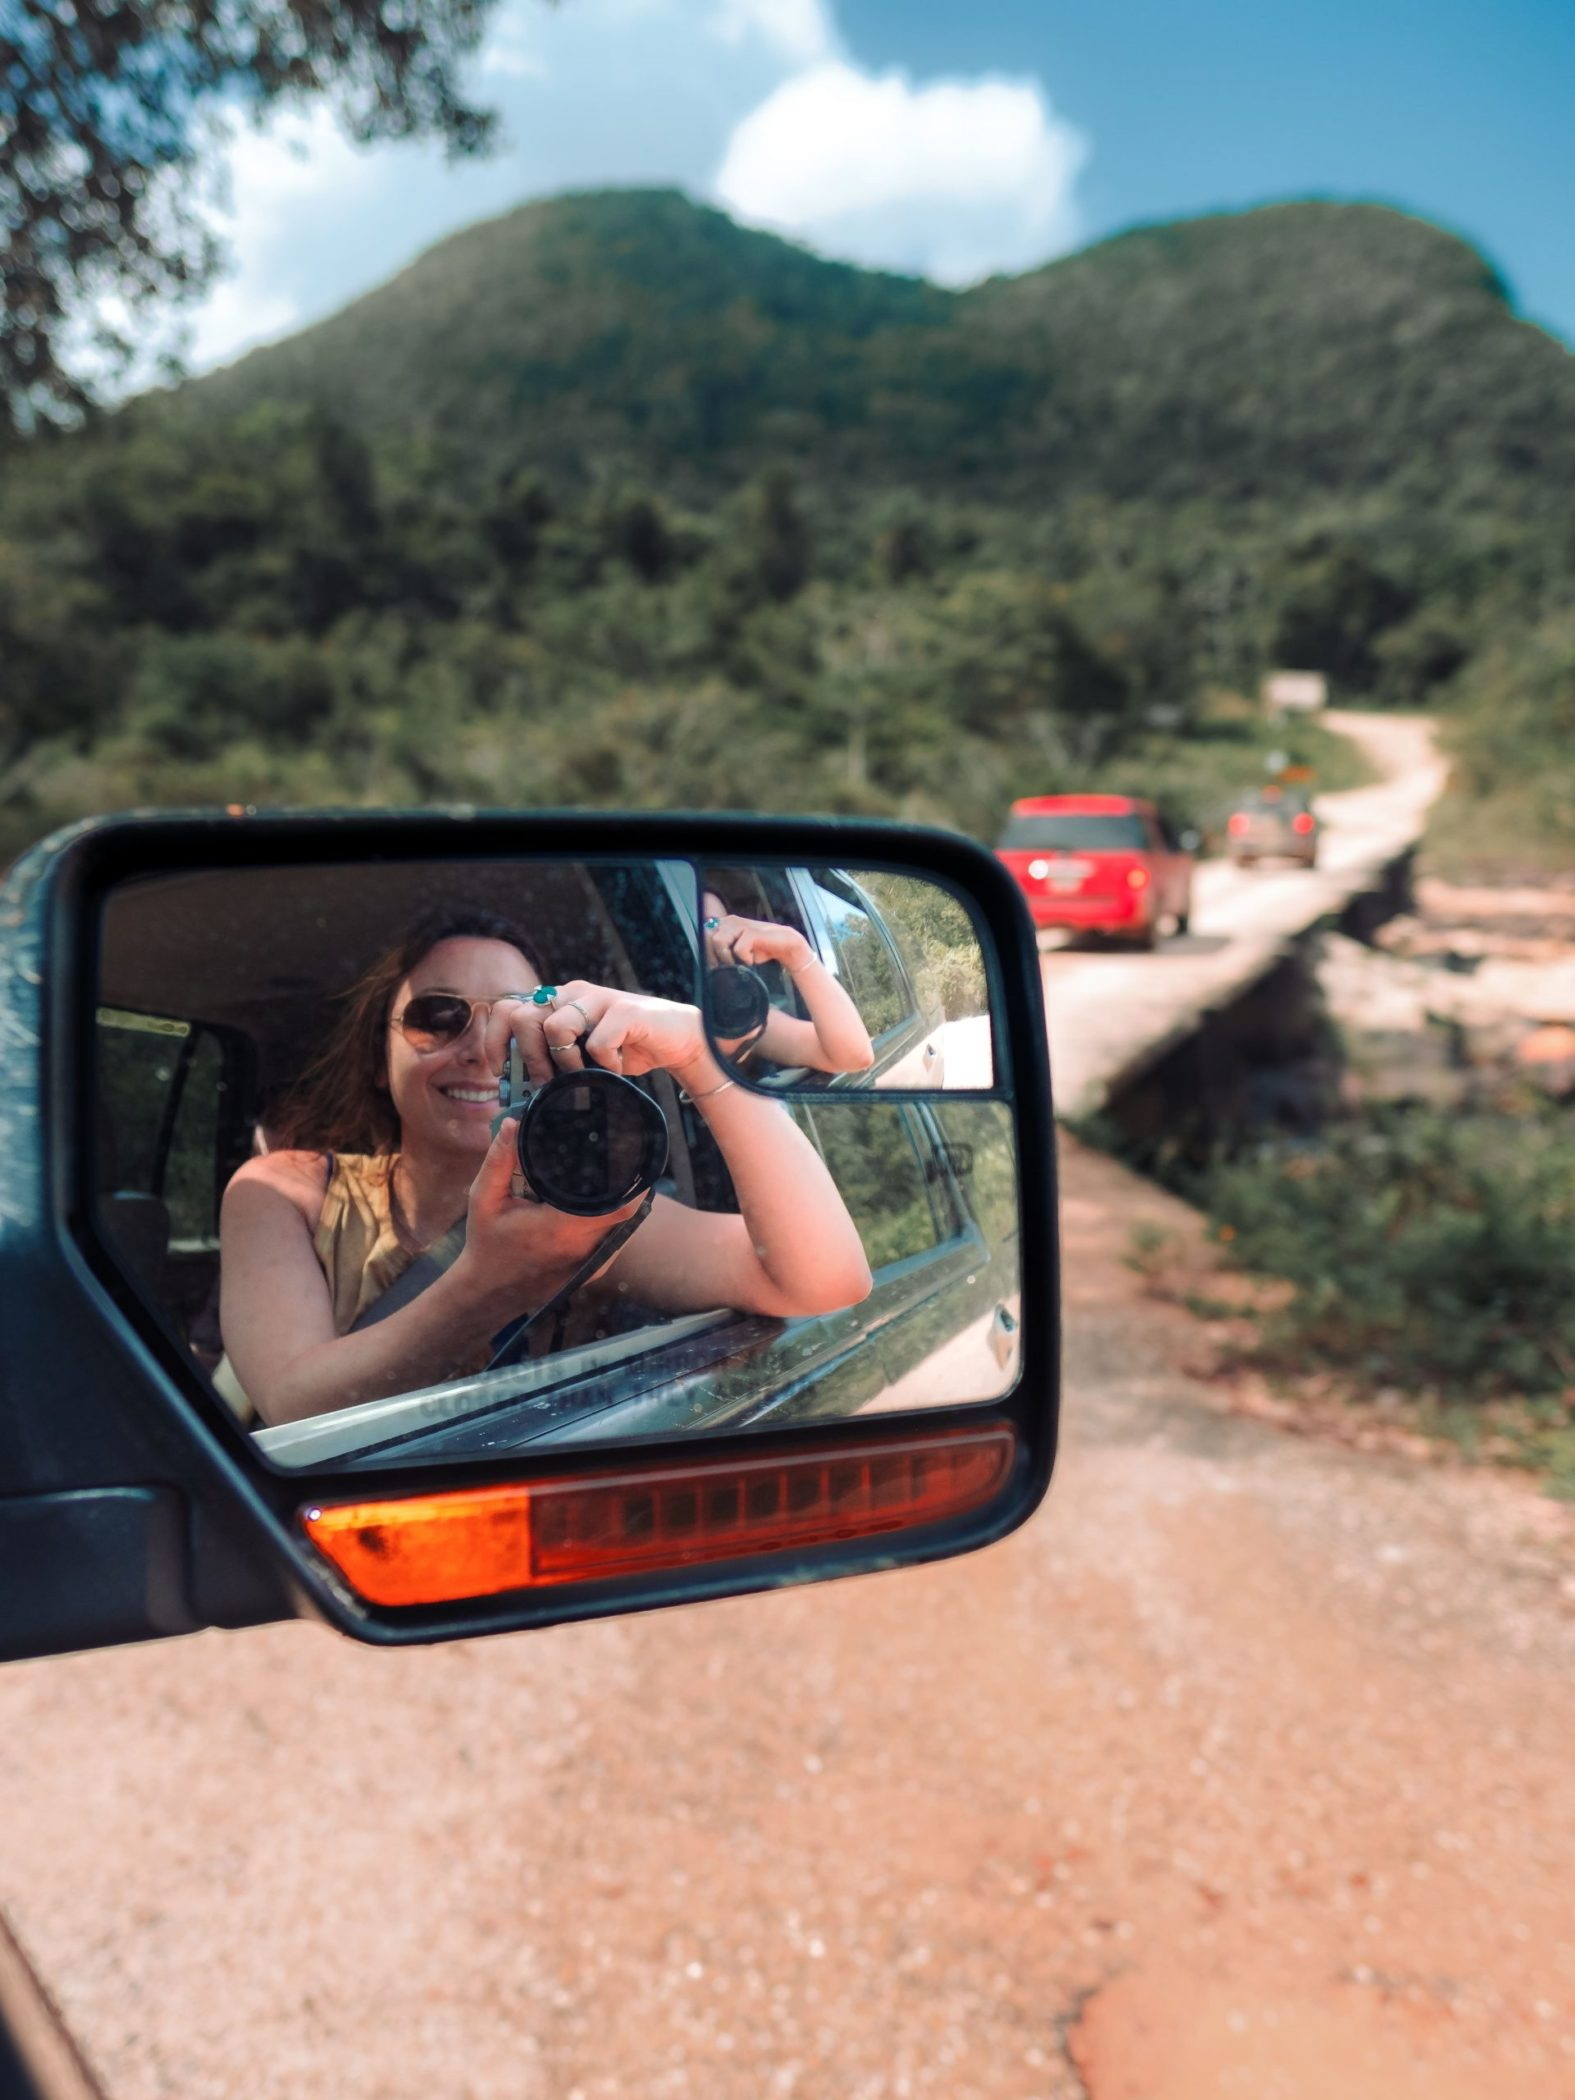 Rear view mirror photography